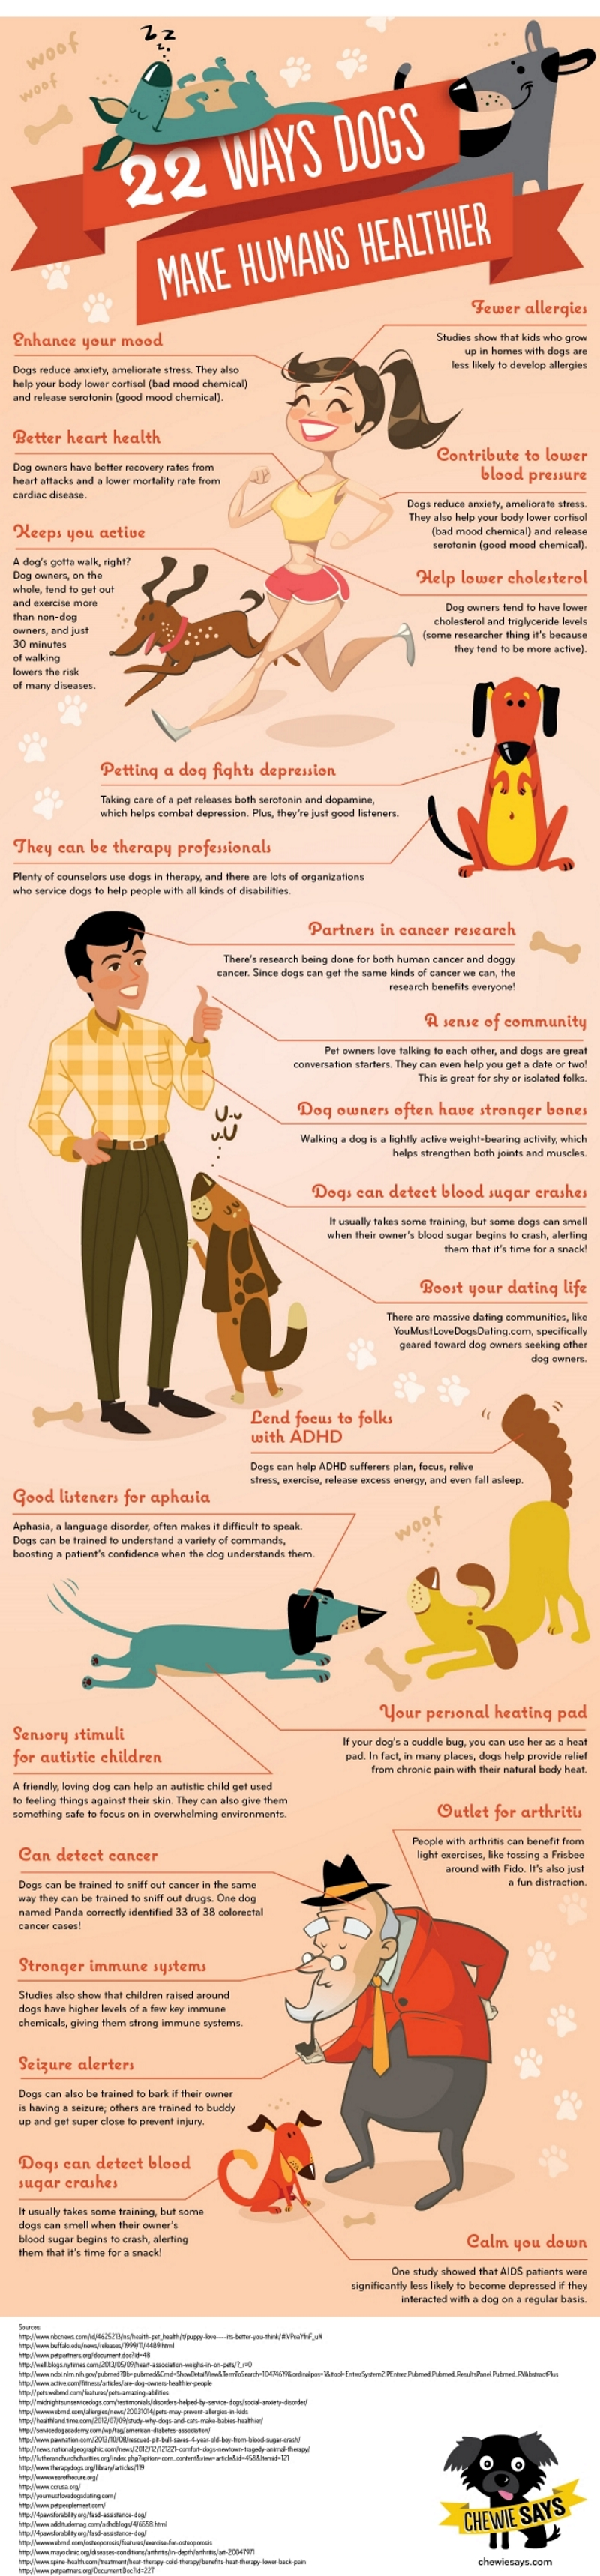 dog and human relationship images to post